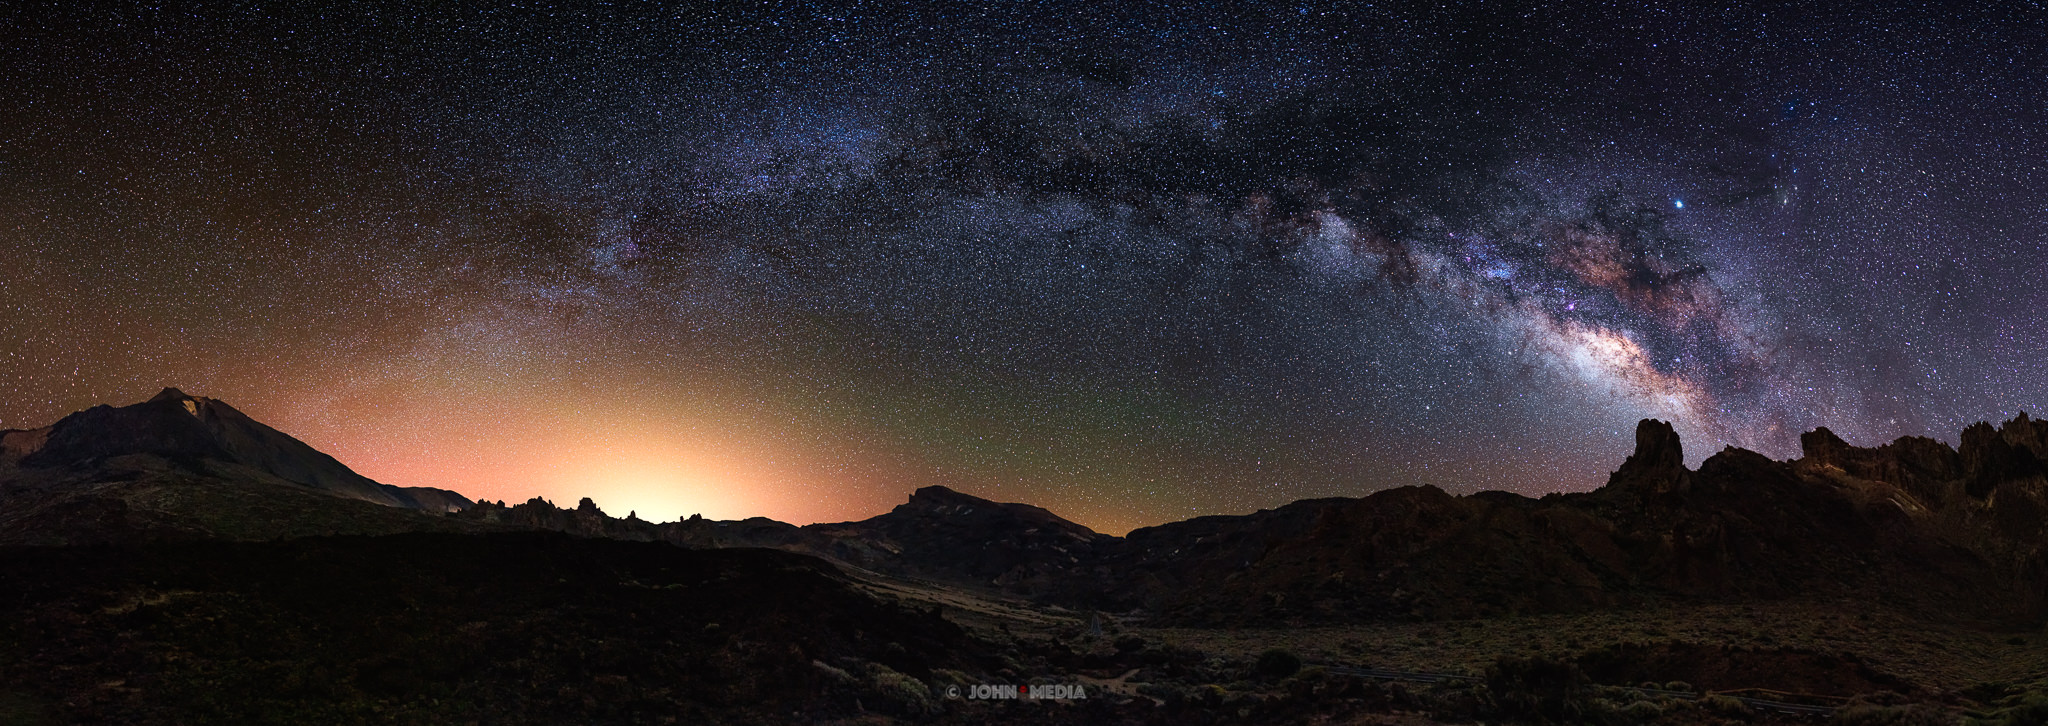 Tenerife astrophotography - milky way from the volcano